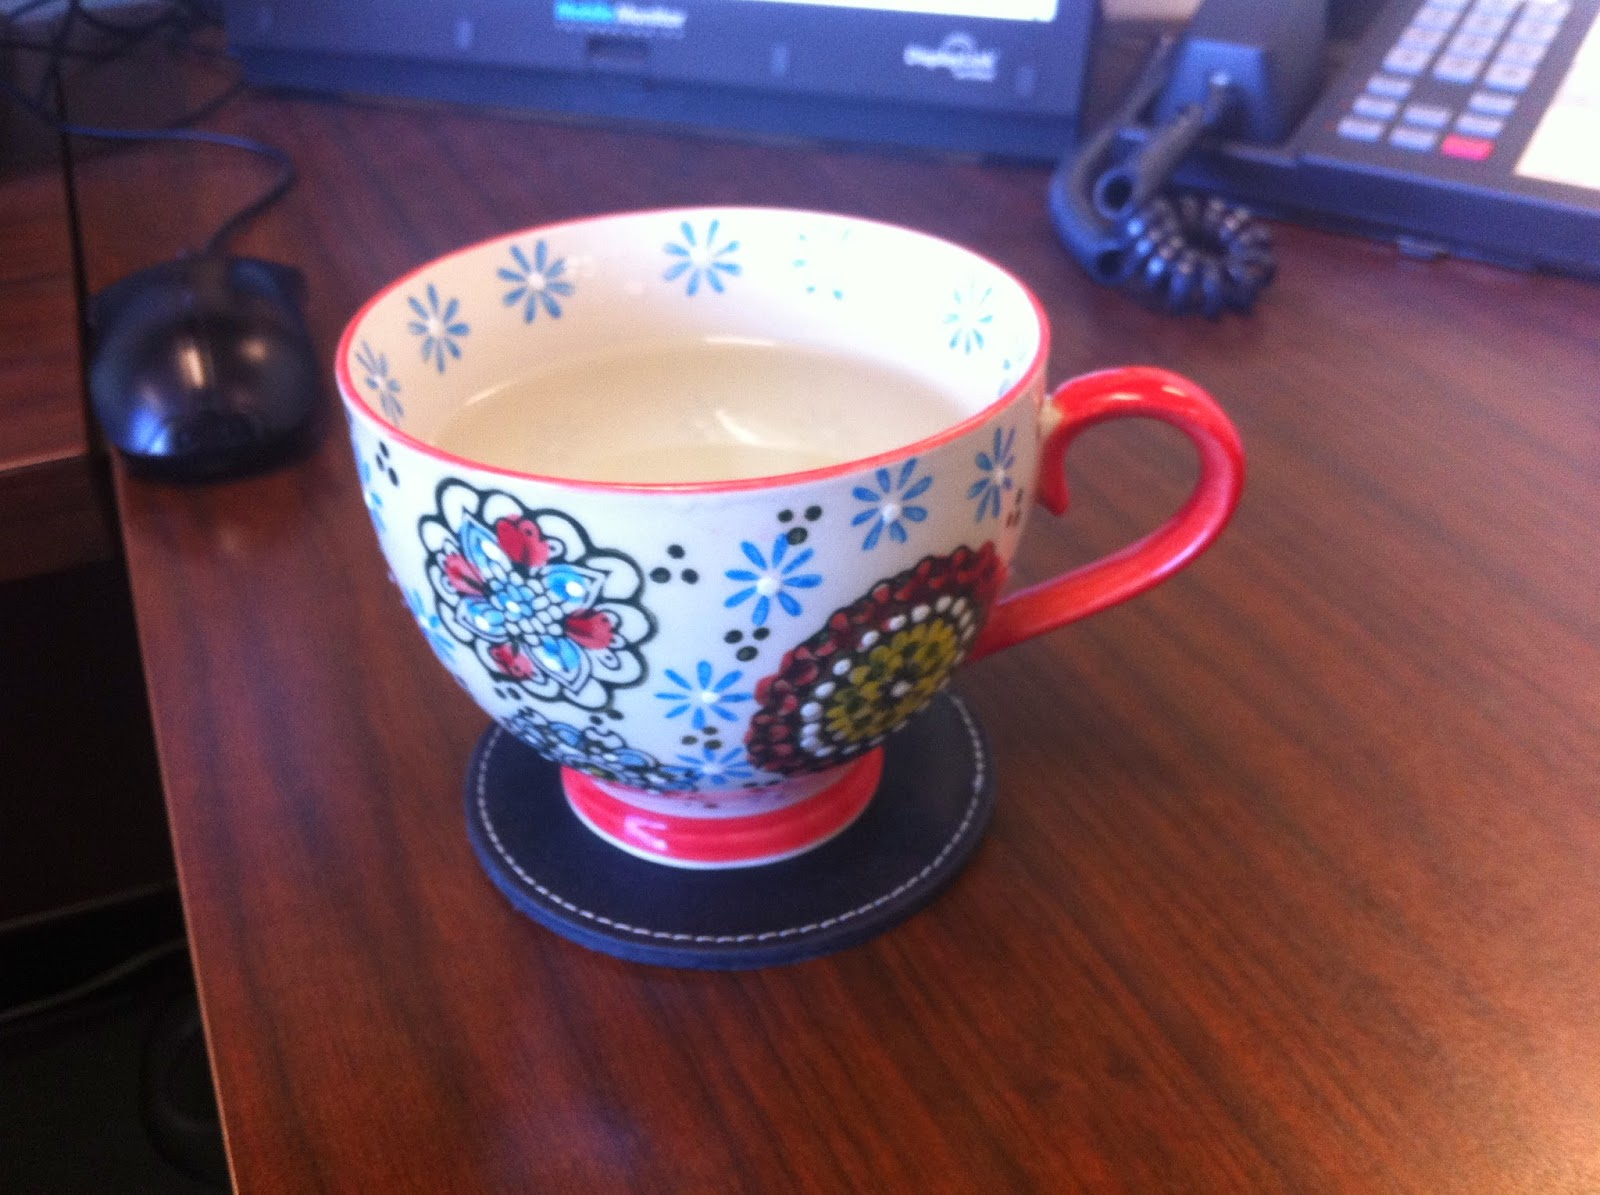 Tea cup with orange and blue flower, filled with warm water.